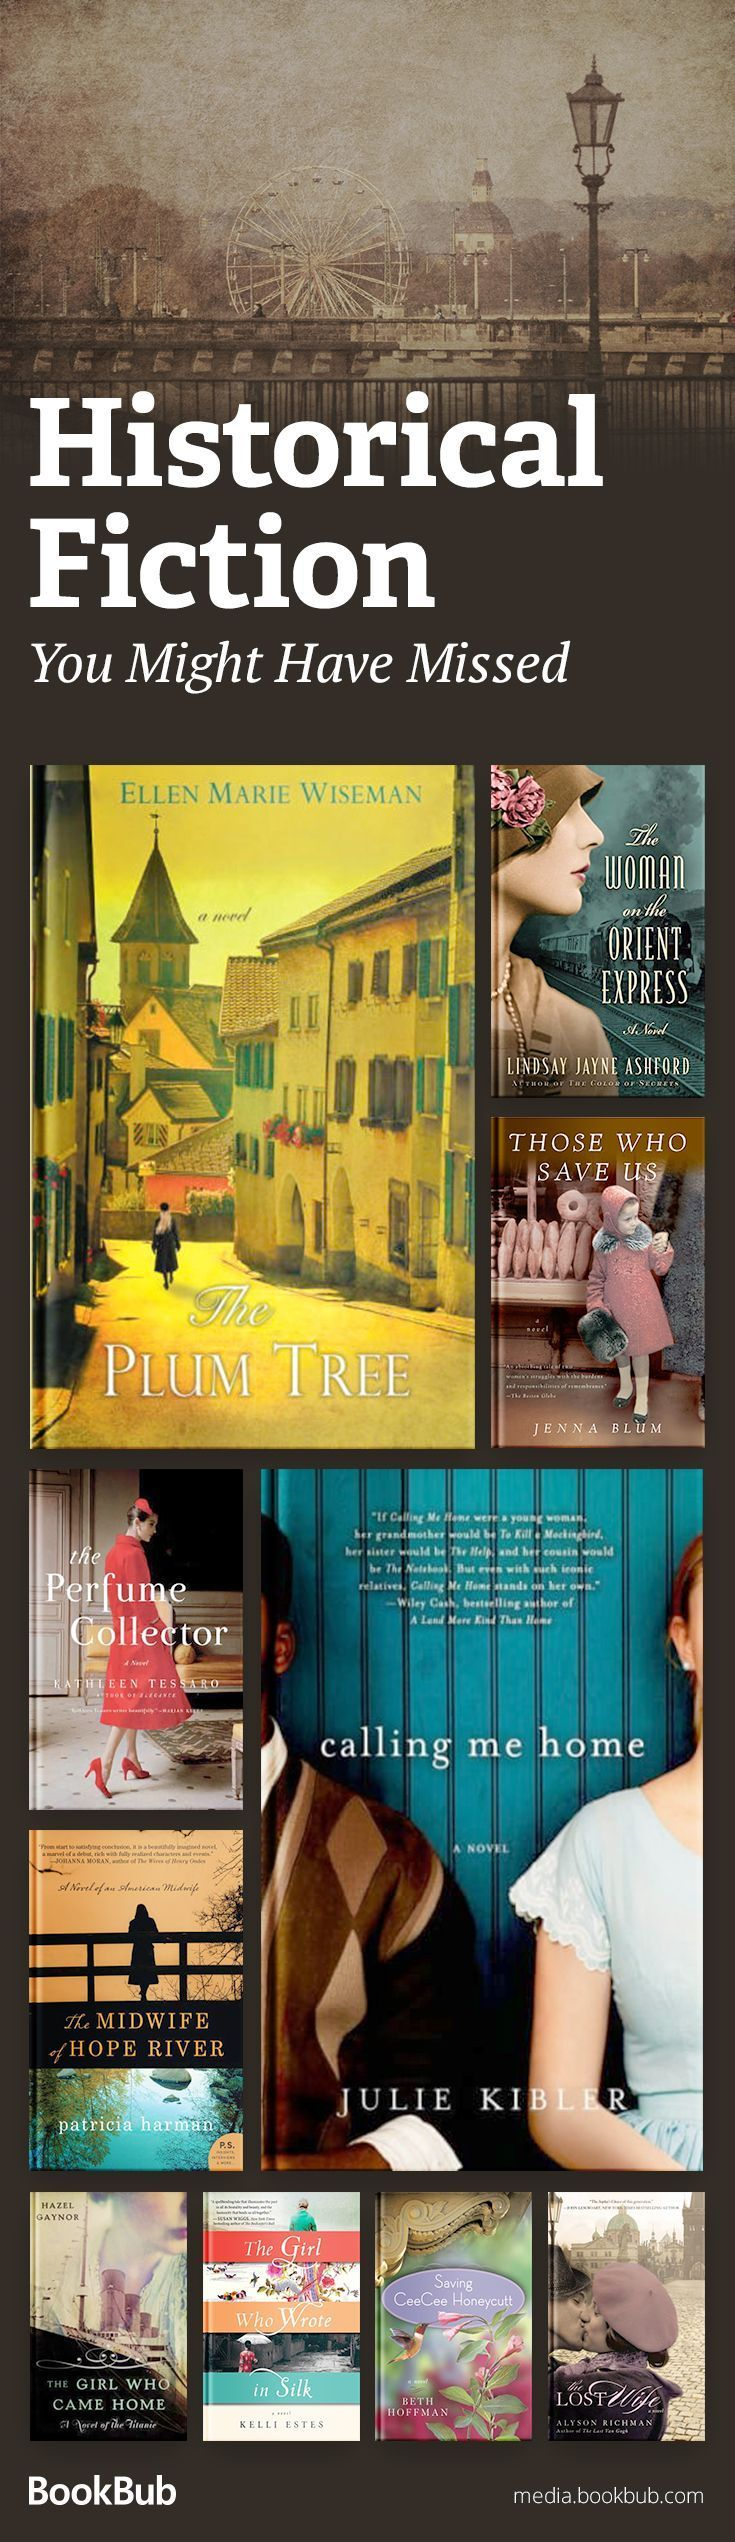 10 Widely Reviewed Historical Fiction Books You May Not Have Read